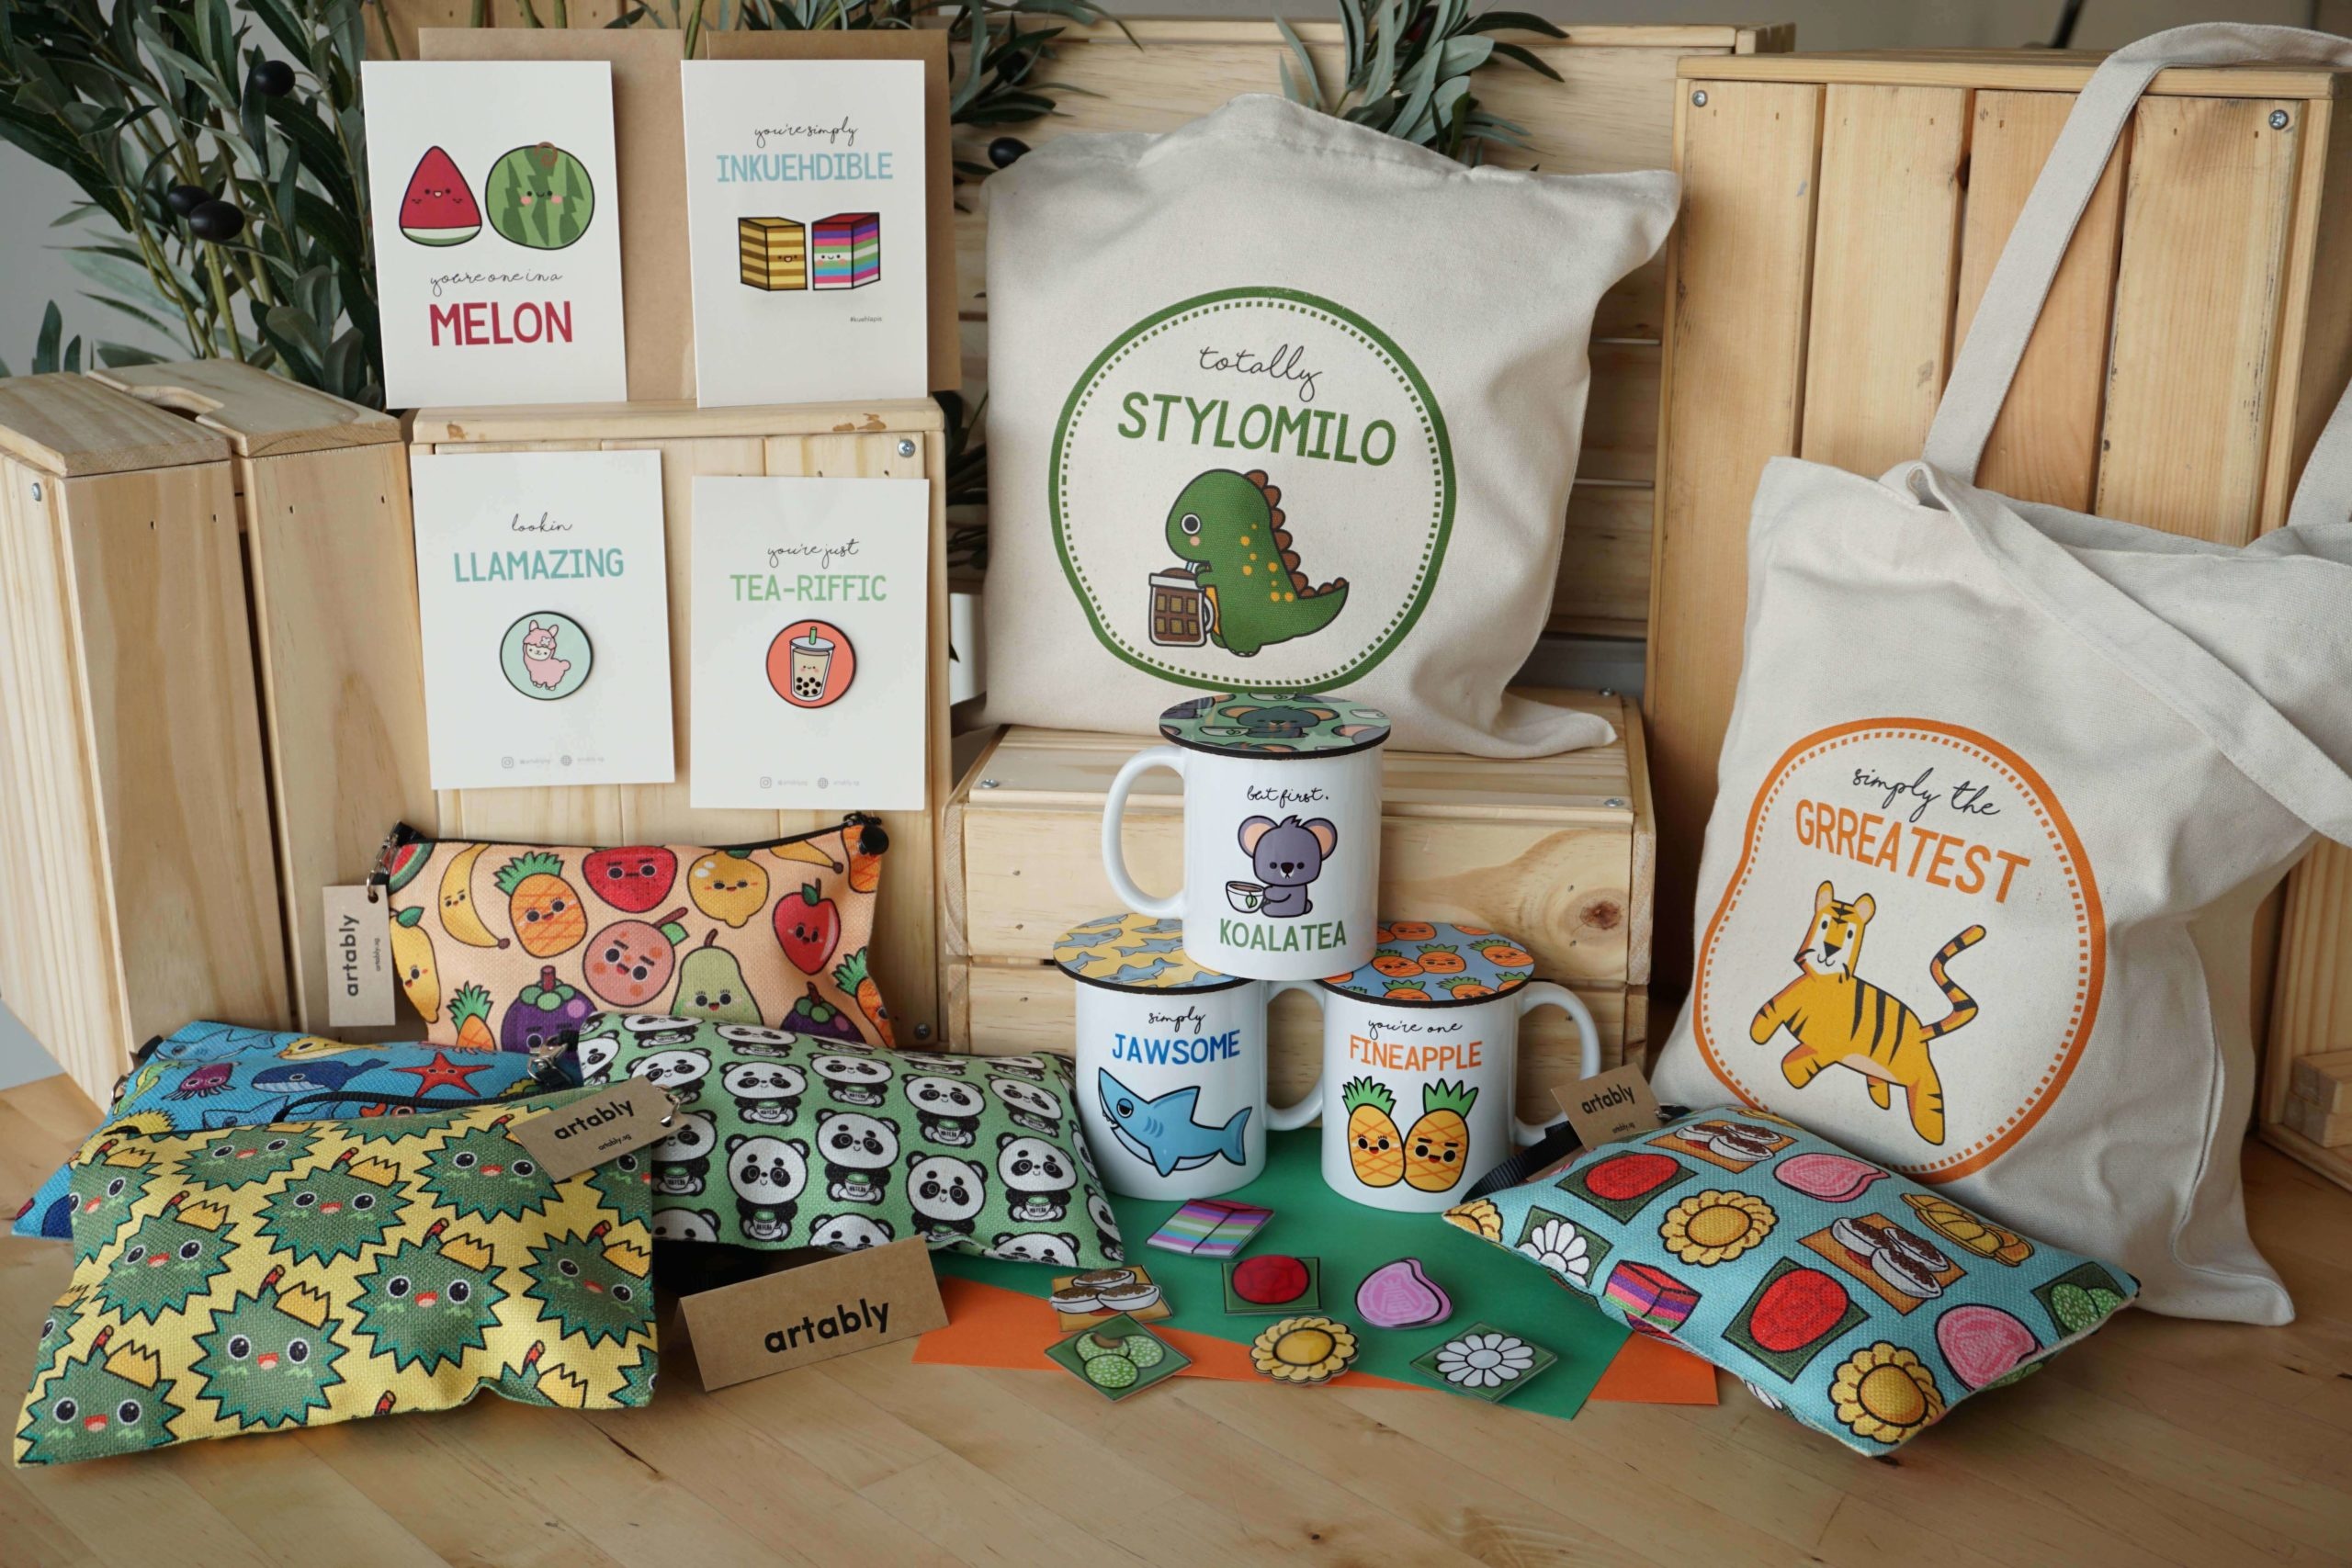 Some examples of Junior Art Lab's merchandise - including tote bags and mugs - featuring their creative and whimsical designs.